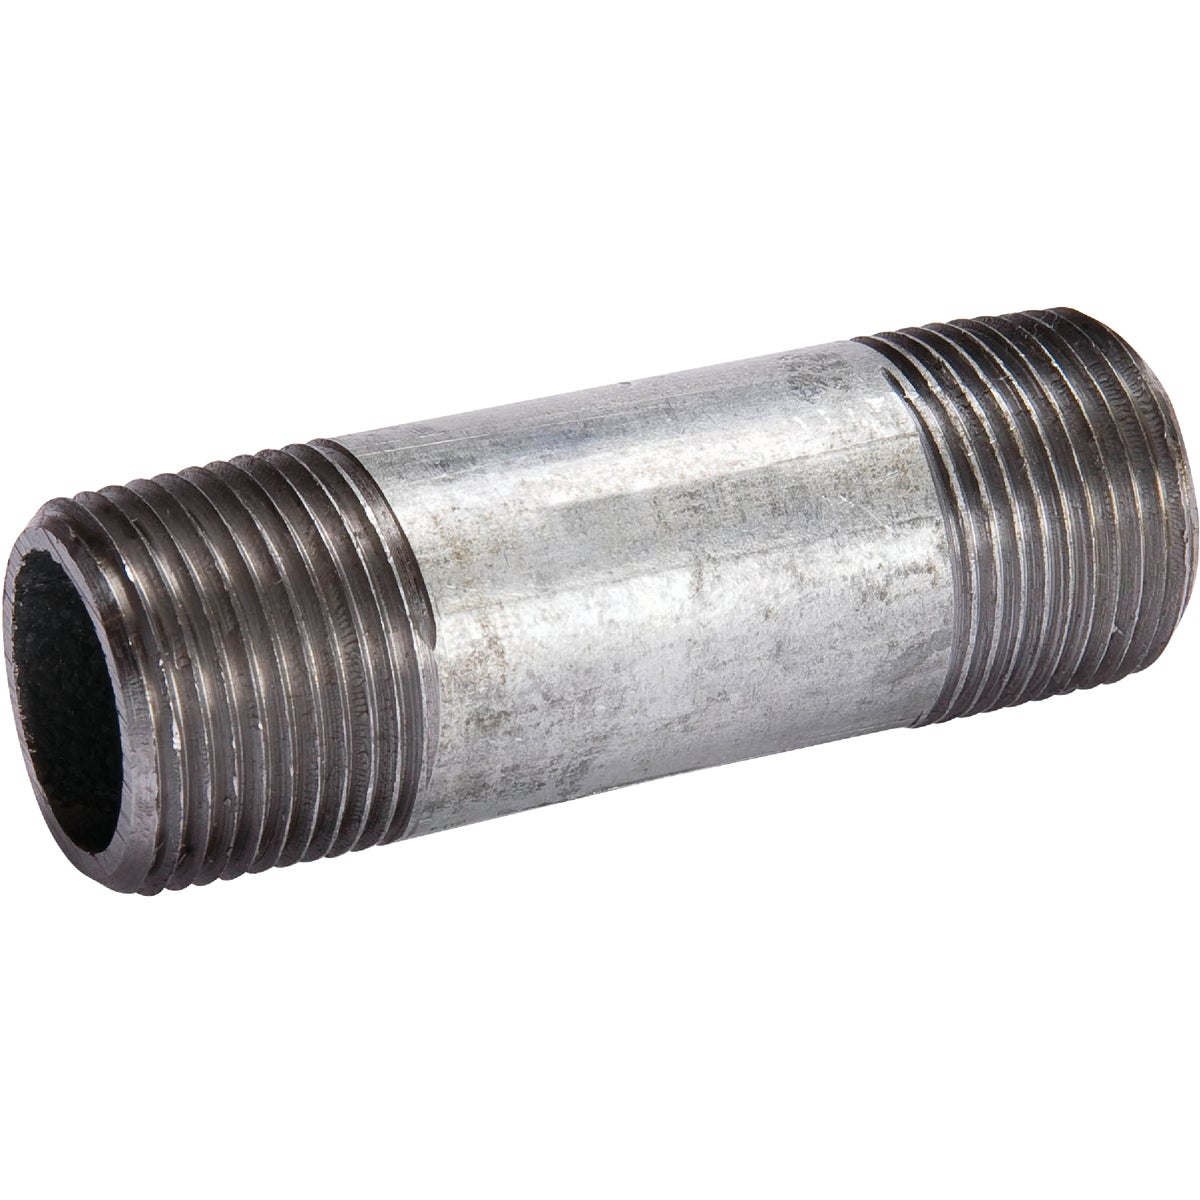 3/4X12 GALV NIPPLE - 10516 by Southland Pipe Nippl